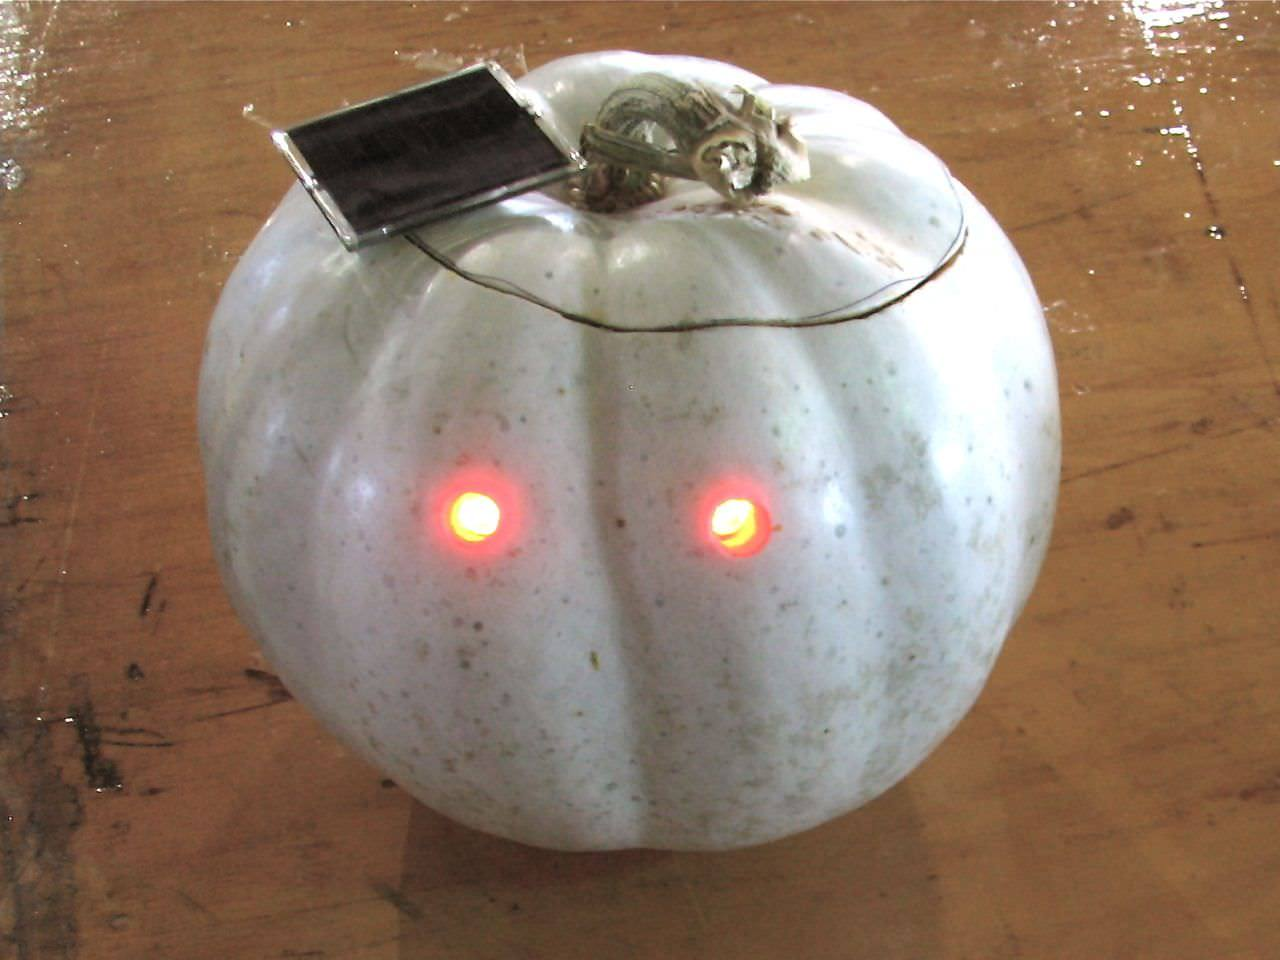 A solar pumpkin. By Lenore Edman, flickr user lenore-m